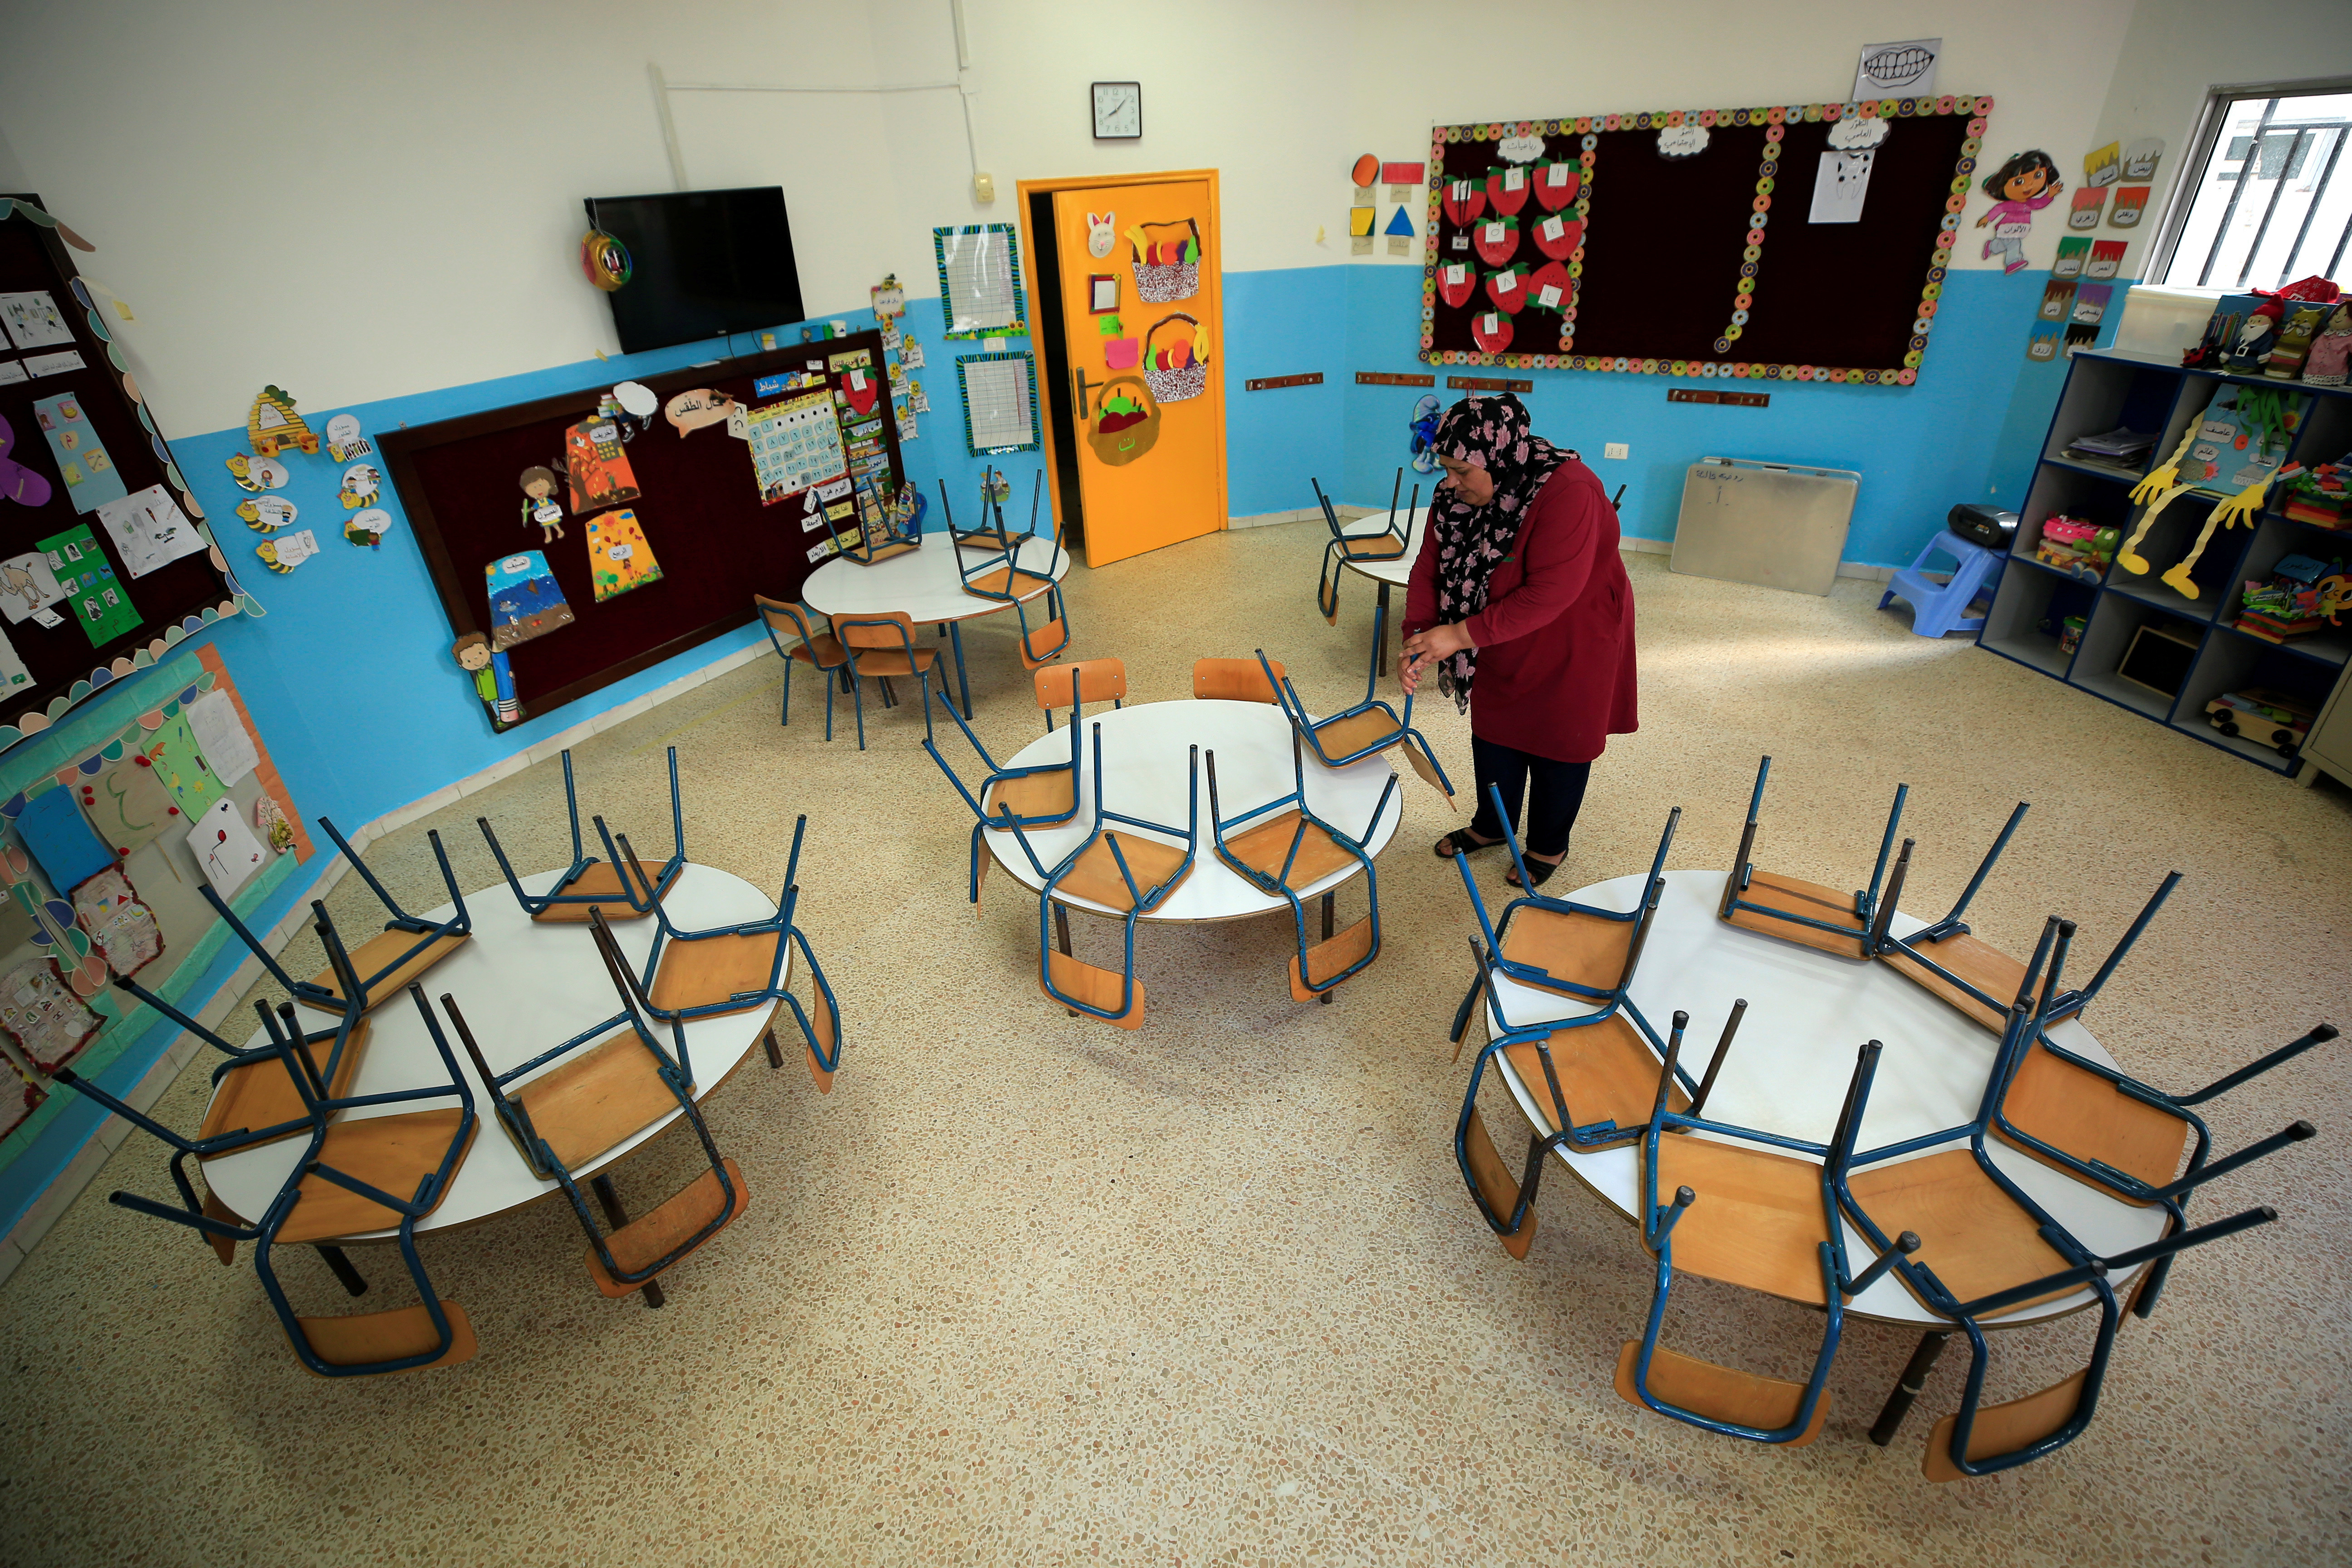 A worker cleans an empty classroom at a school, as Lebanon's education system is in limbo with multiple challenges, in Sidon Lebanon, May 29, 2020. Picture taken May 29, 2020. REUTERS/Ali Hashisho - RC2P5H98CNKL